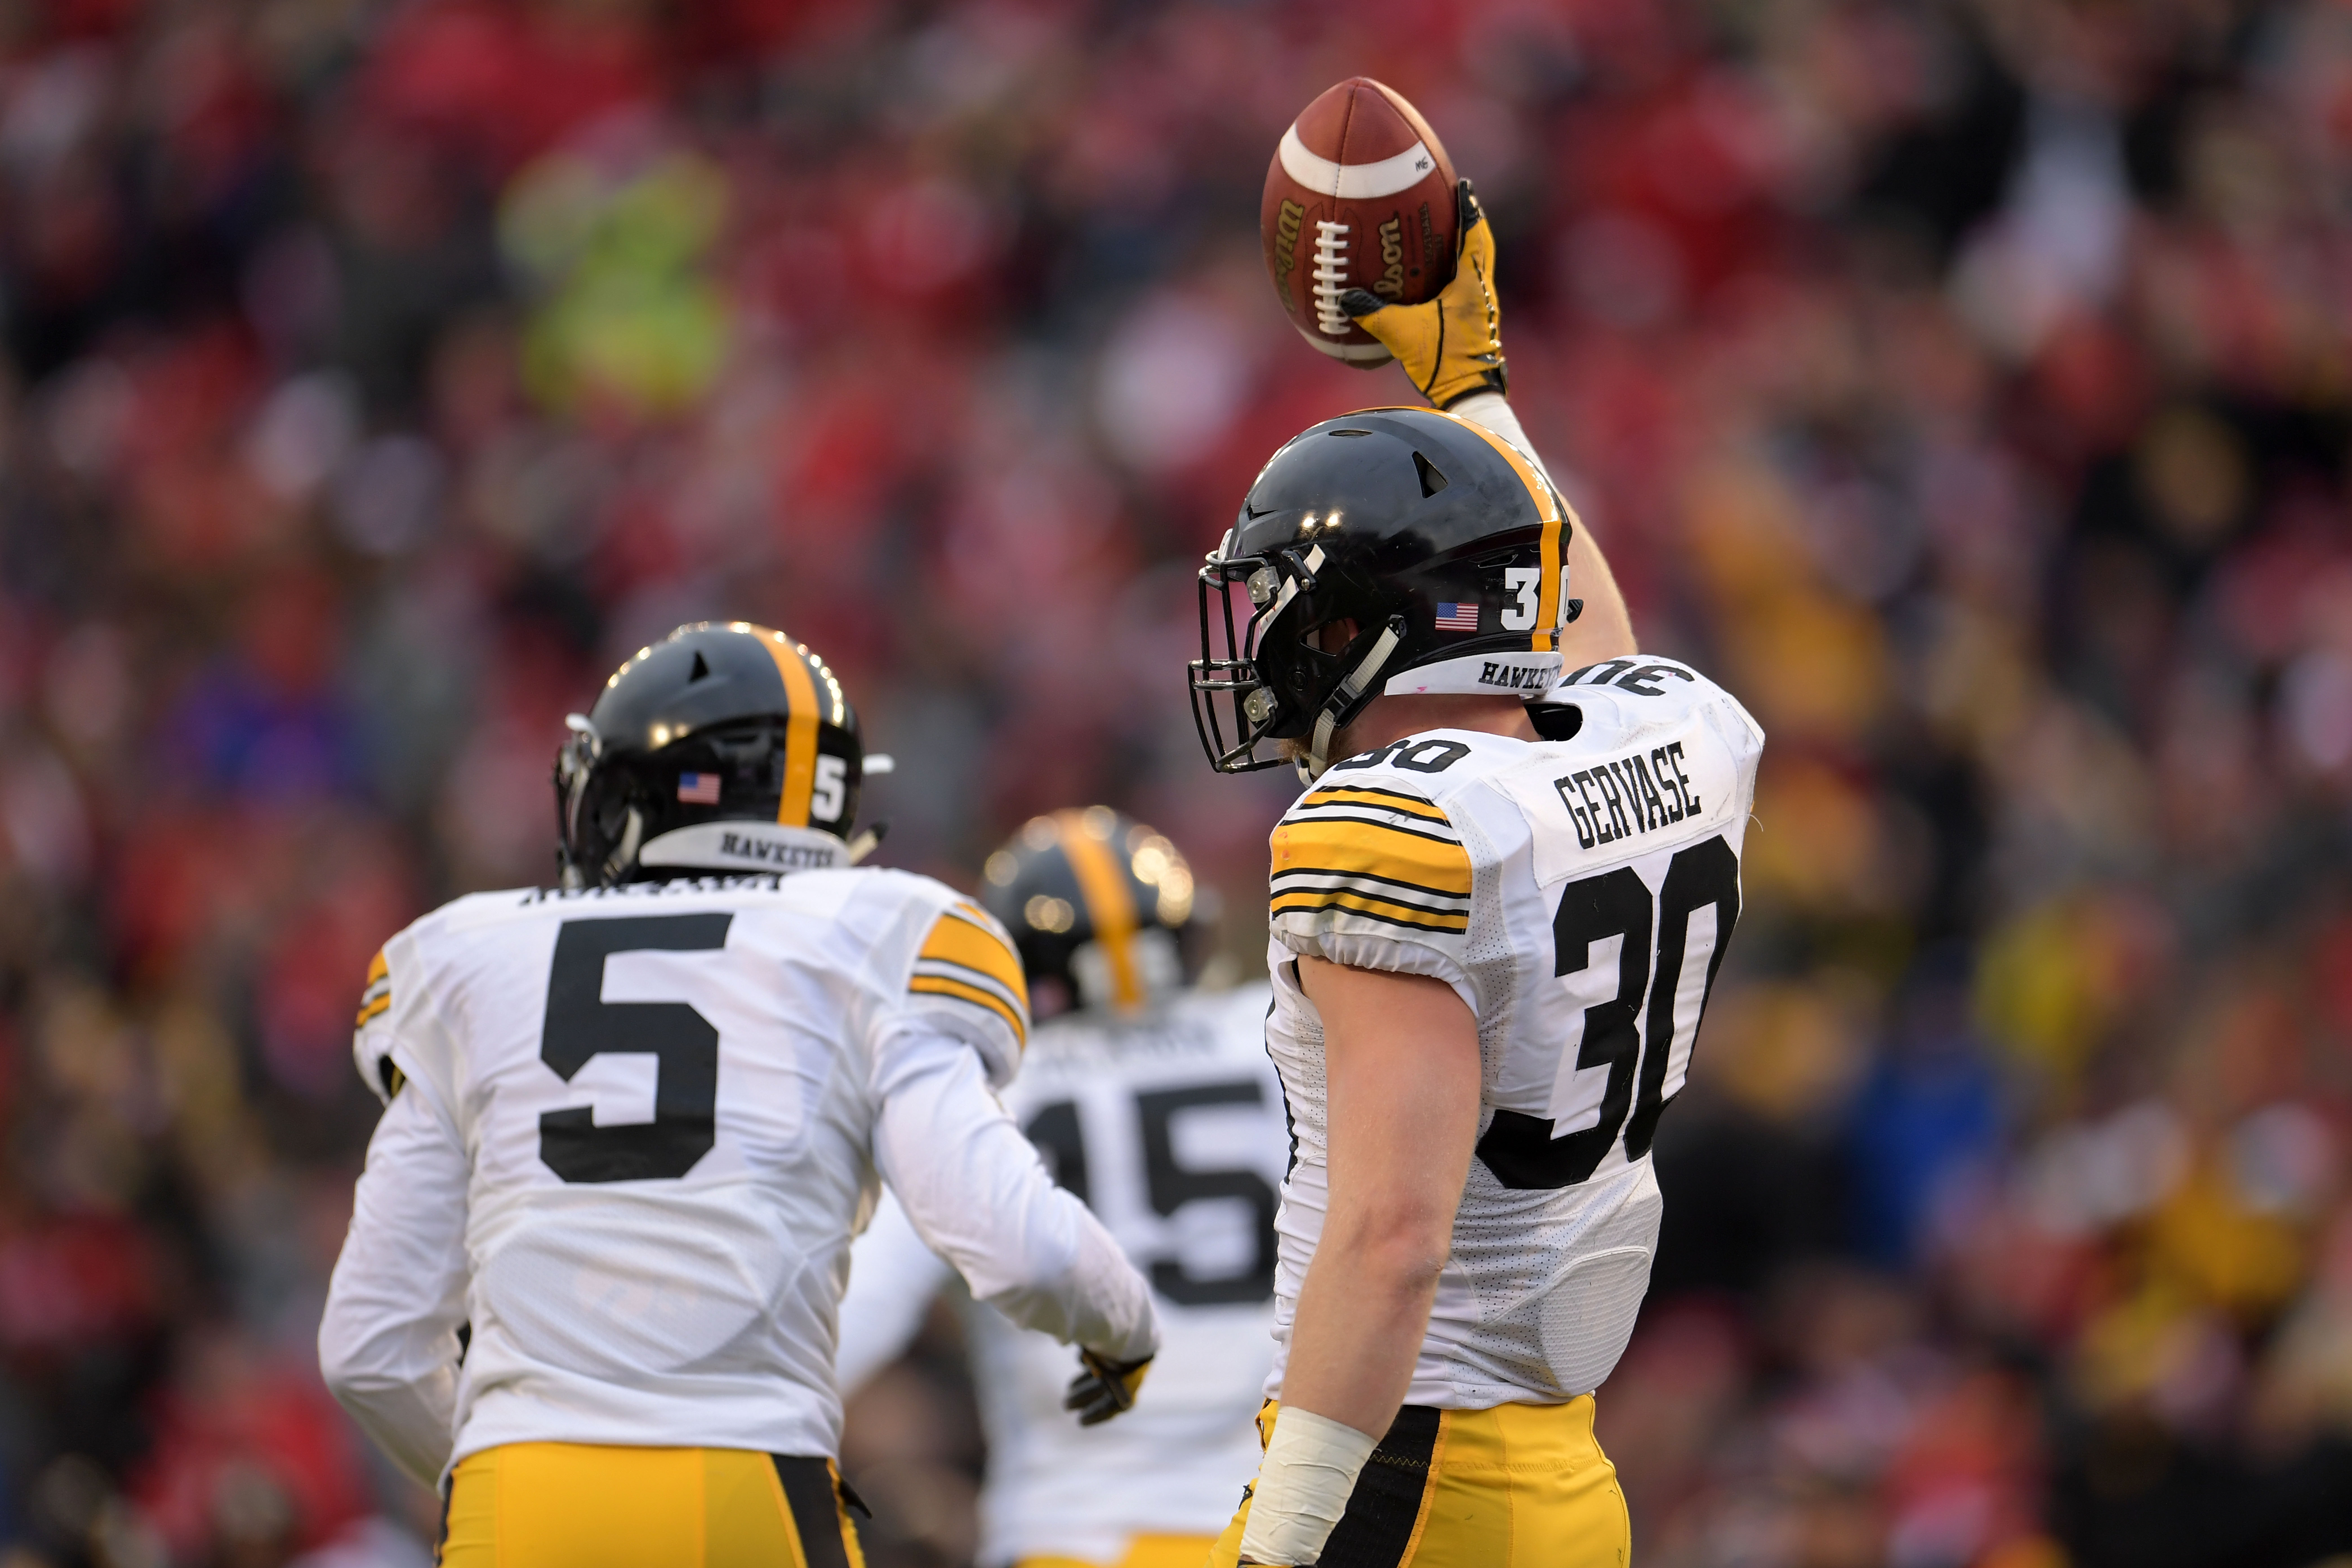 Iowa football: Q&A with the Wisconsin Badger experts